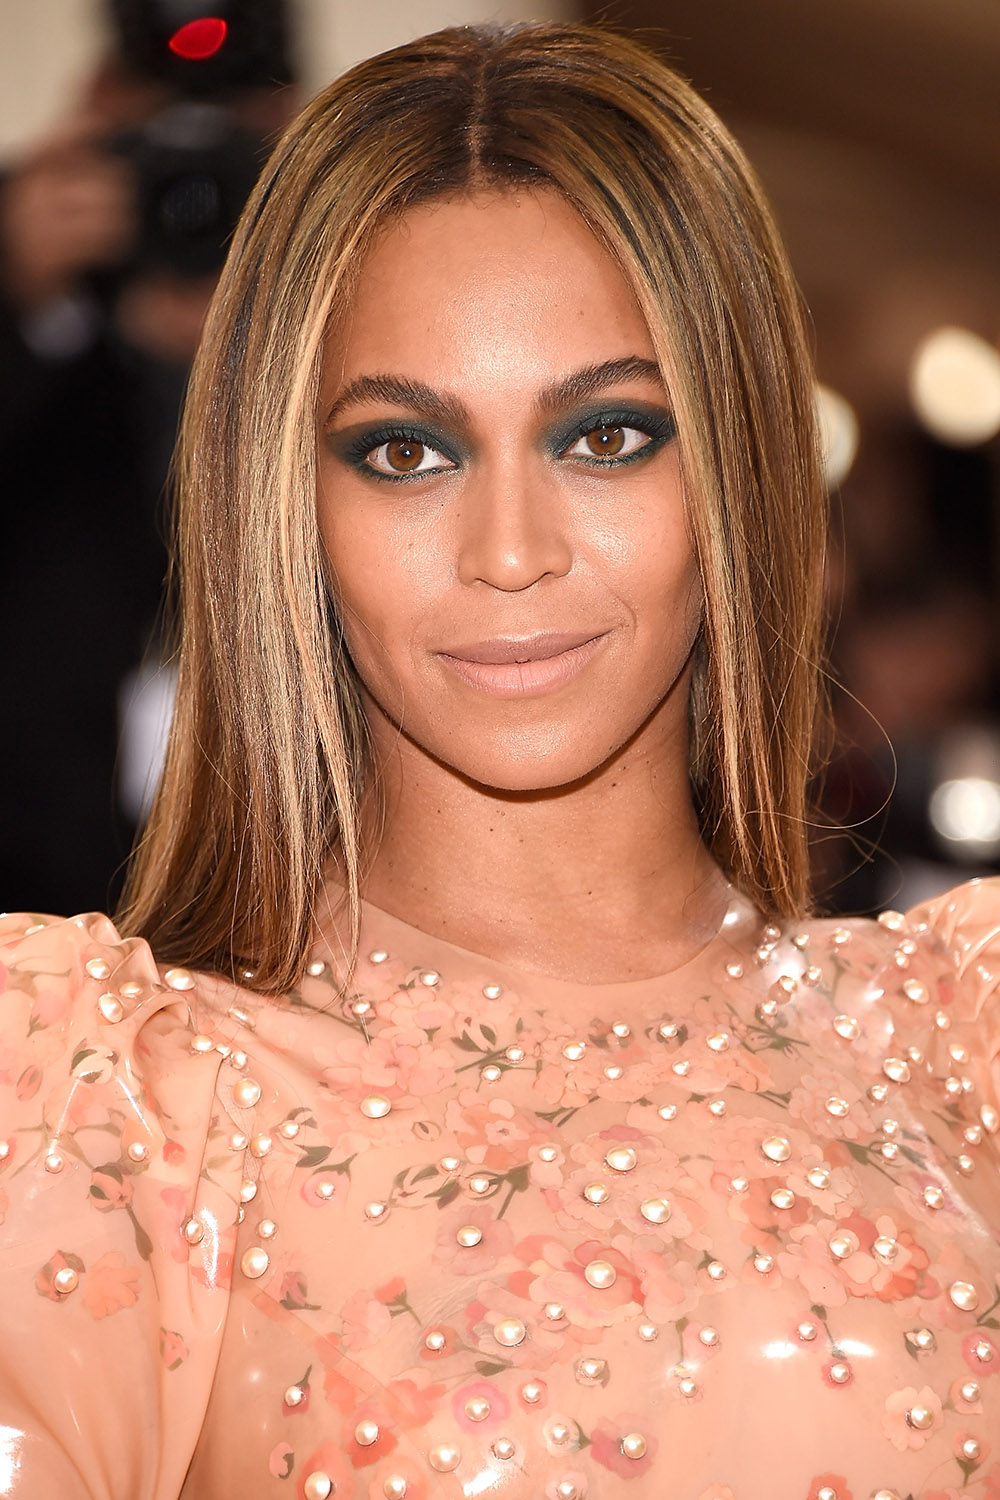 Best Hair Makeup And Beauty Looks From The Met Gala 2016